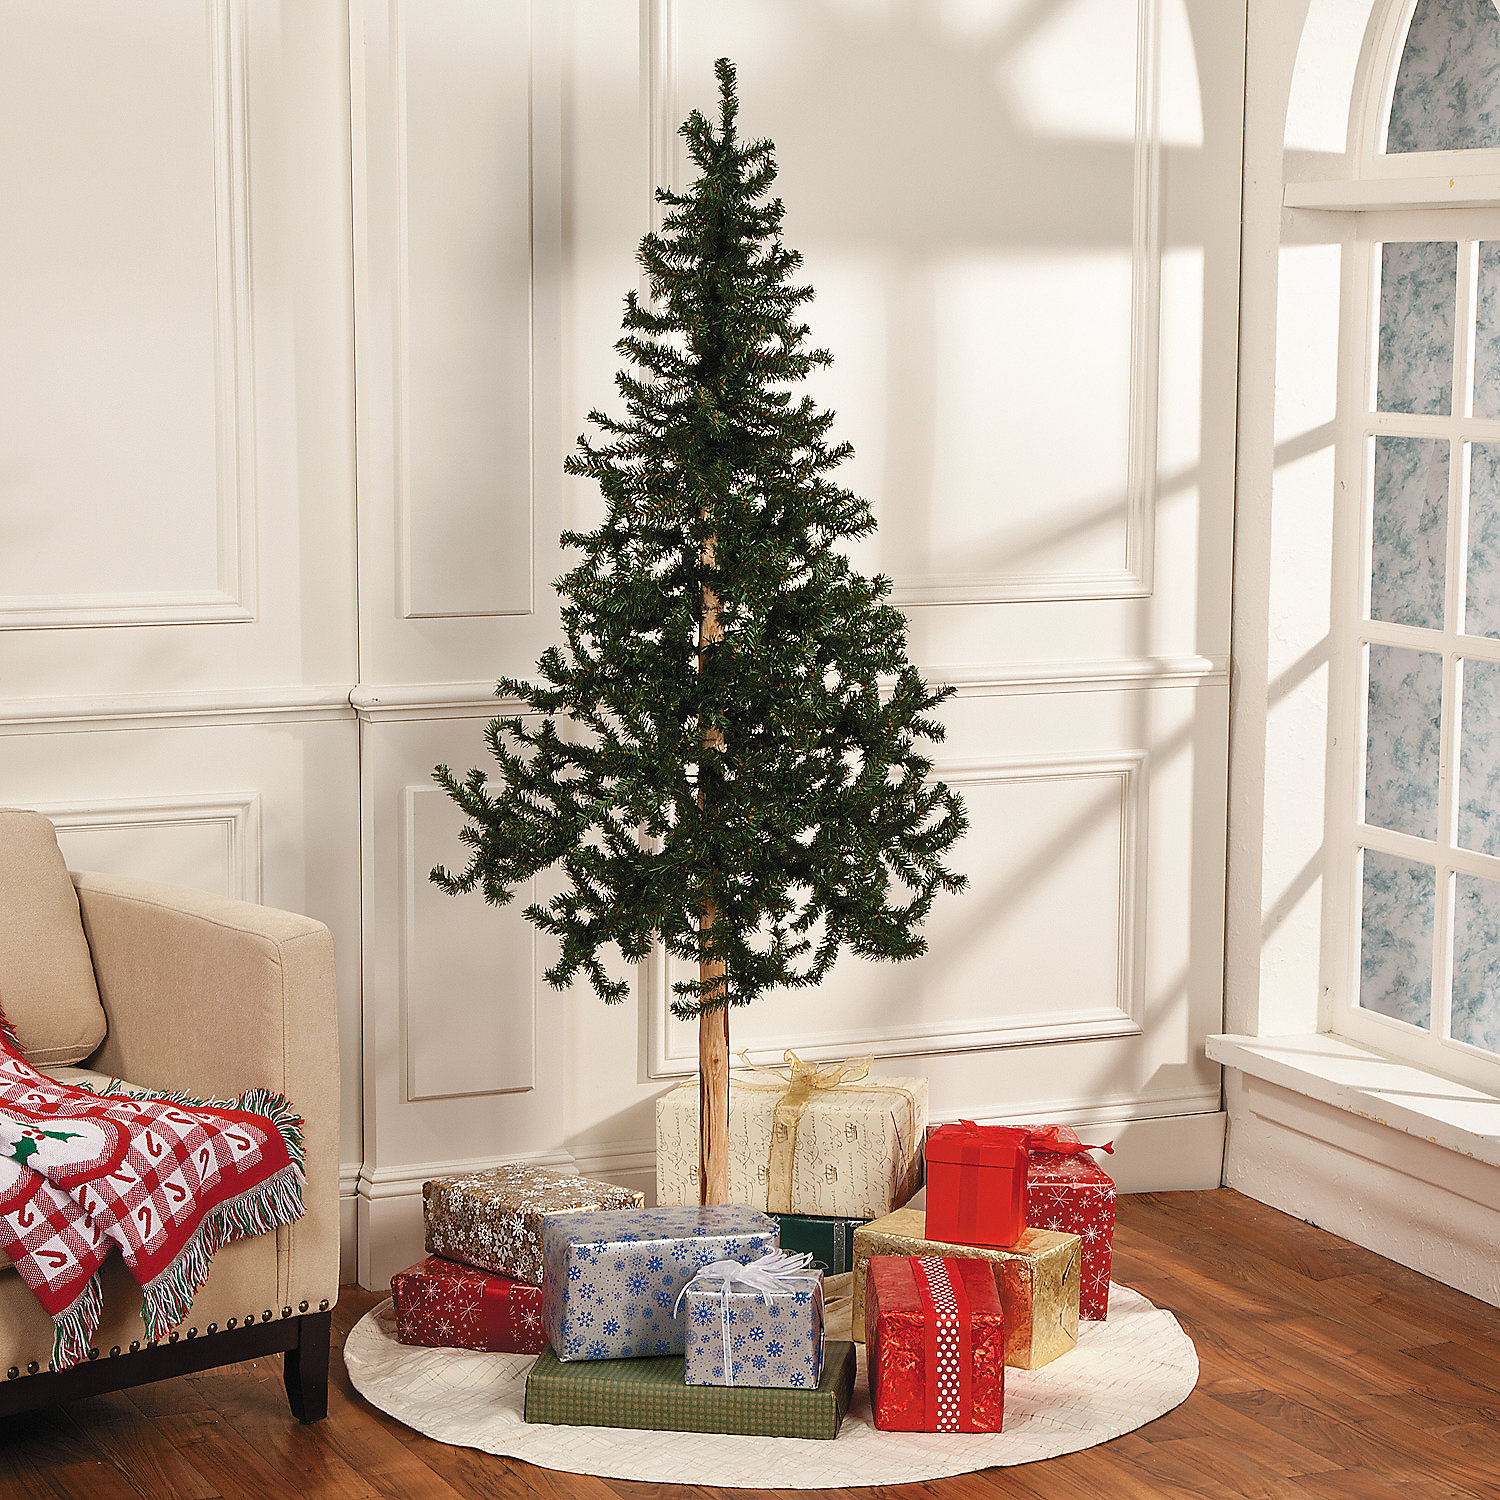 Home Decor, Accents, Holiday Decorations & Accessories - Terry's ...